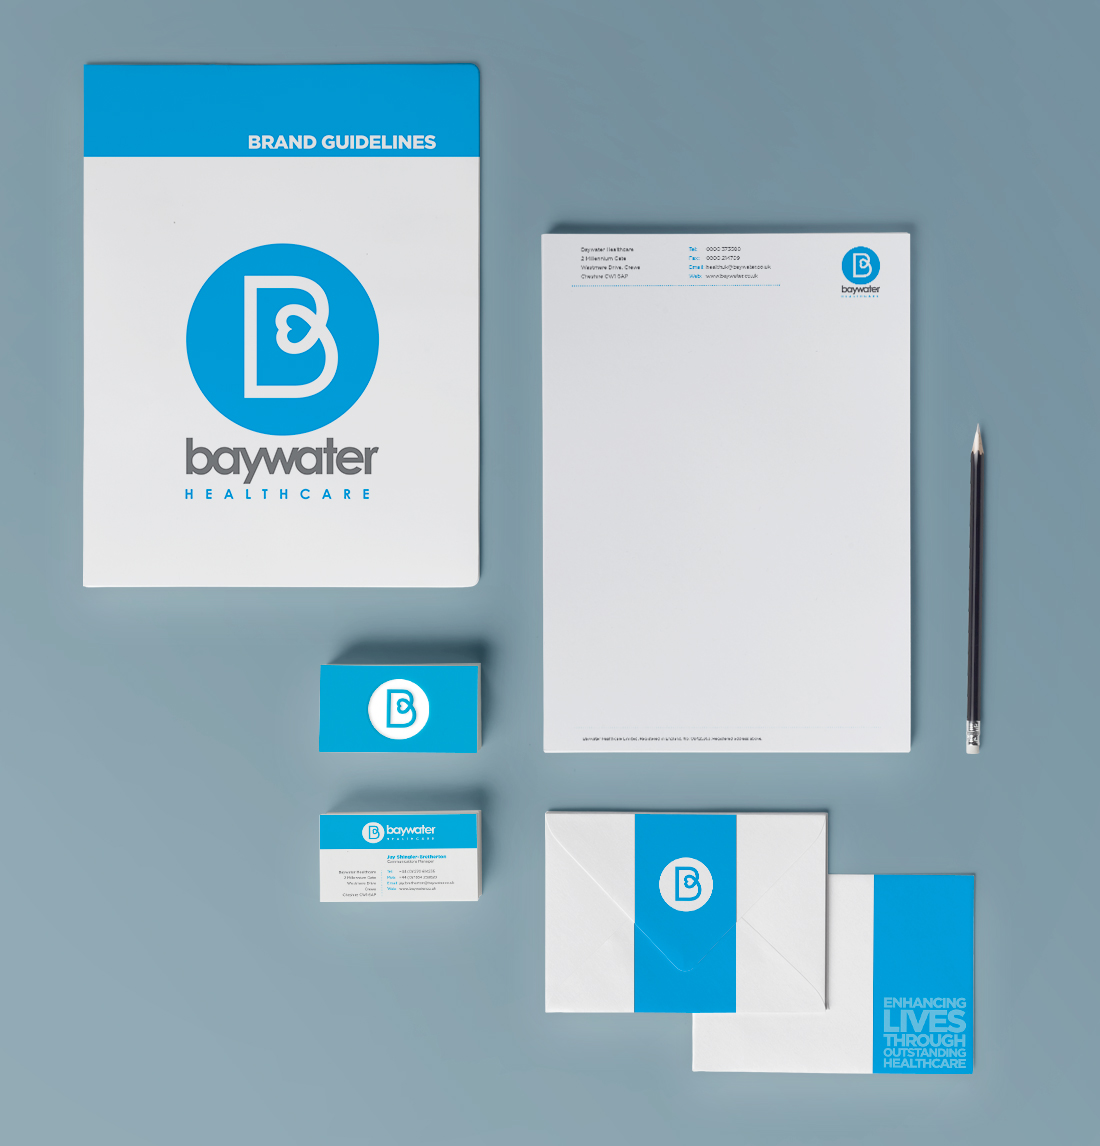 Baywater healthcare rebrand guidelines